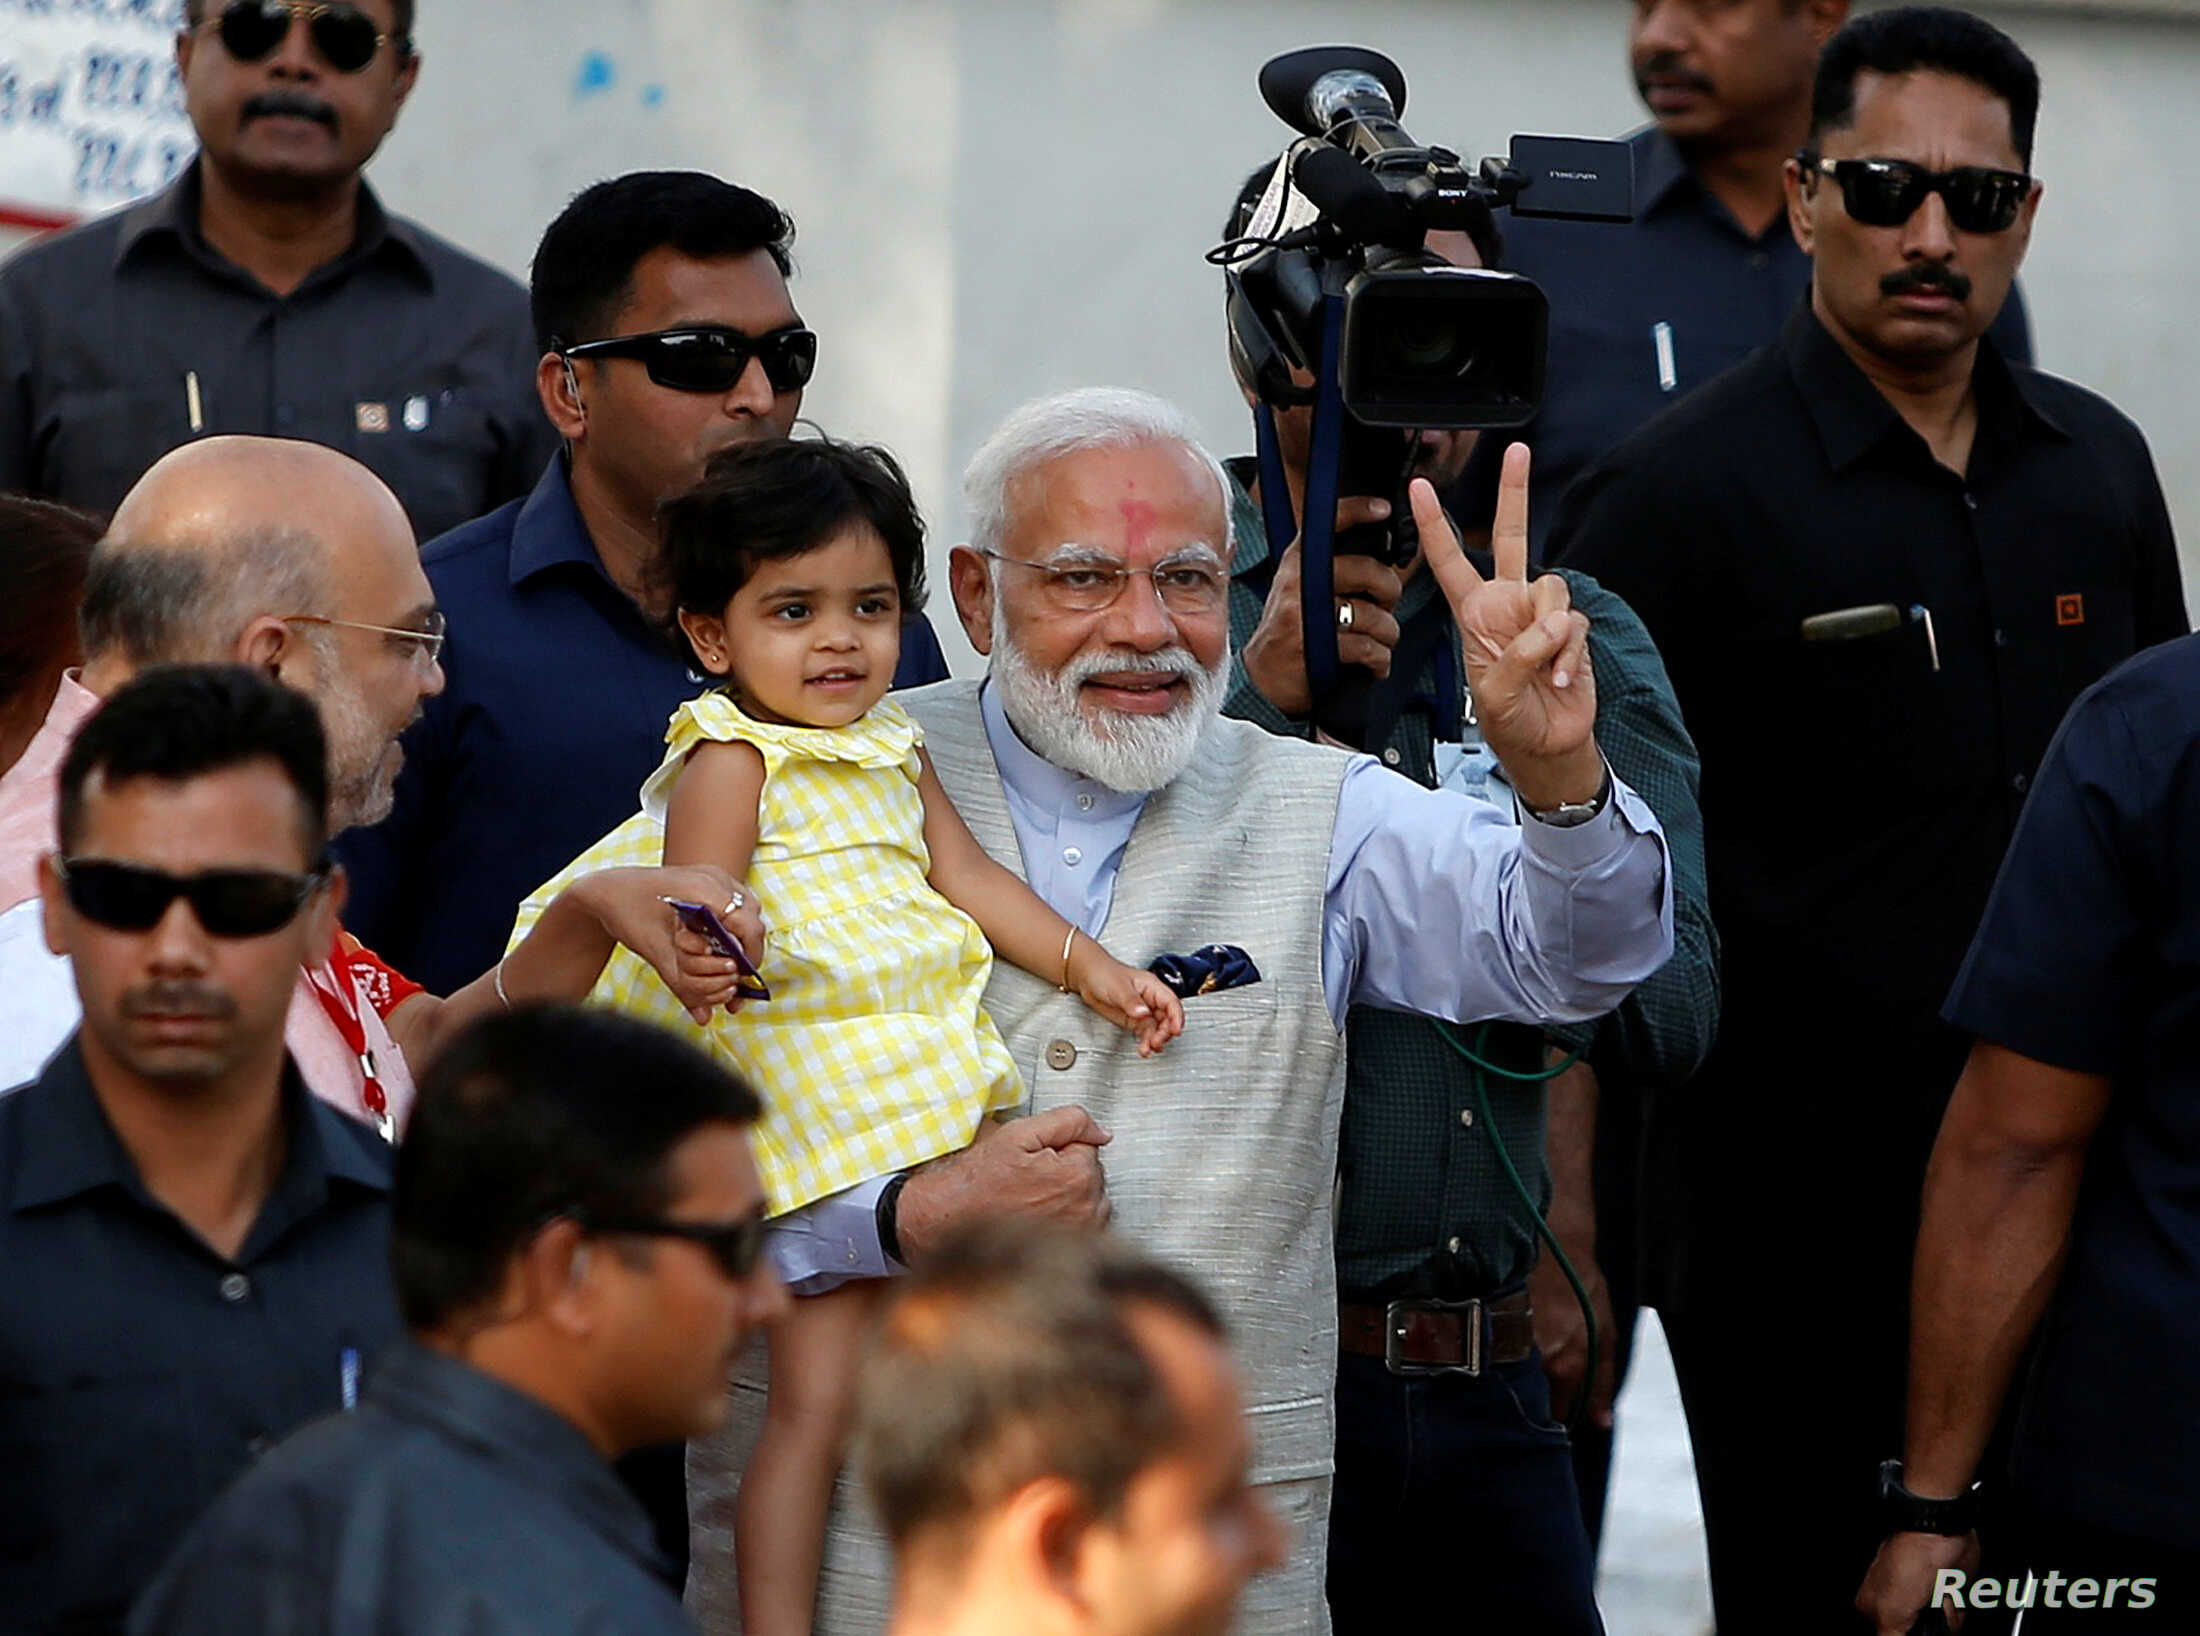 India's PM Minister Narendra Modi gestures as he holds the granddaughter of India's ruling Bharatiya Janata Party (BJP) president Amit Shah after he arrives to cast his vote at a polling station in Ahmedabad, Apr. 23, 2019.